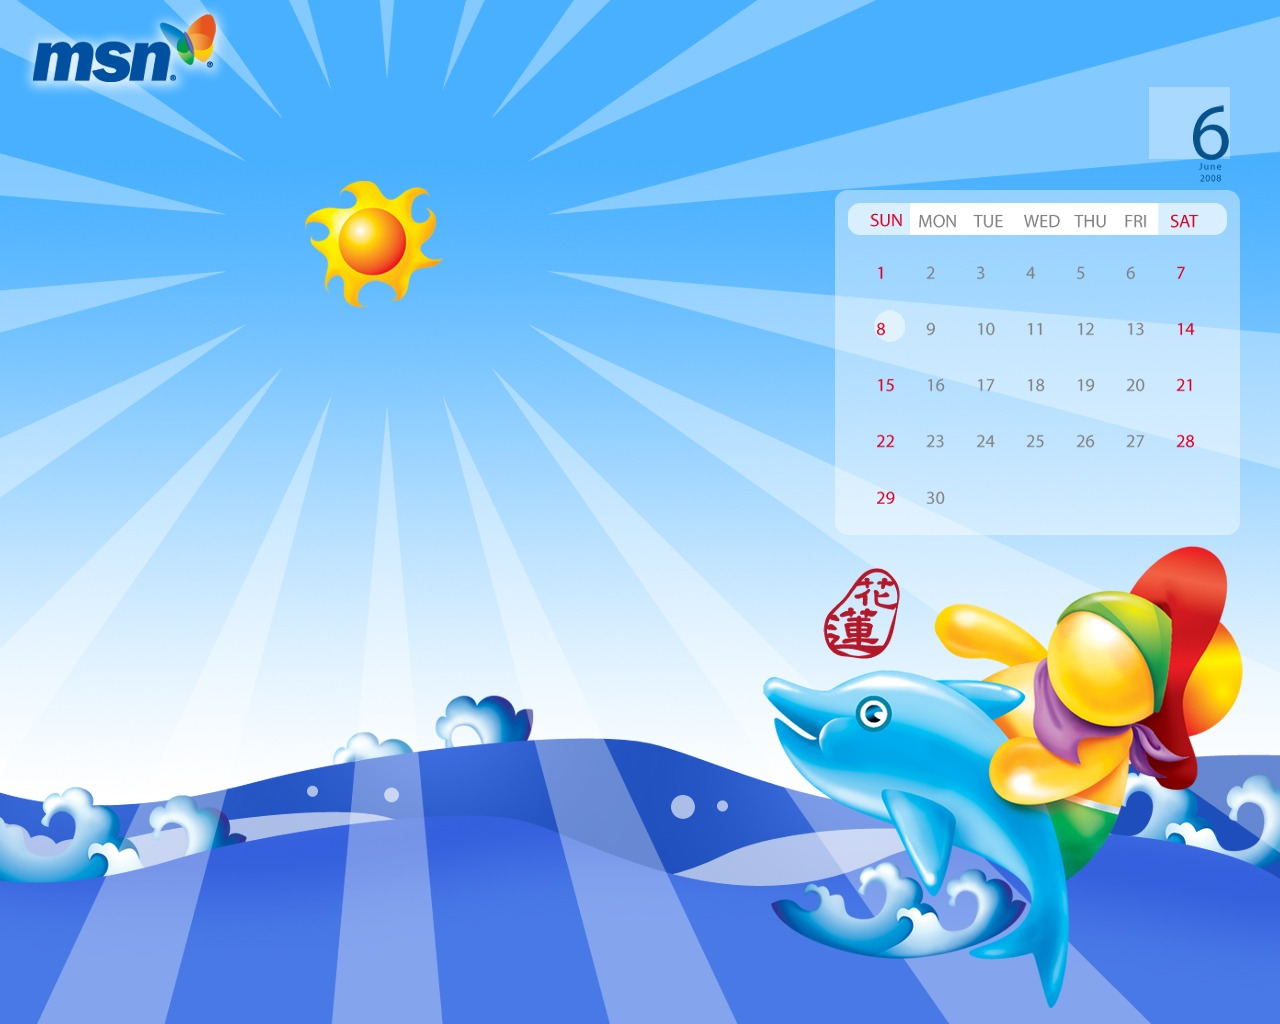 Calendar Live Wallpaper : Msn wallpapers for desktop wallpapersafari